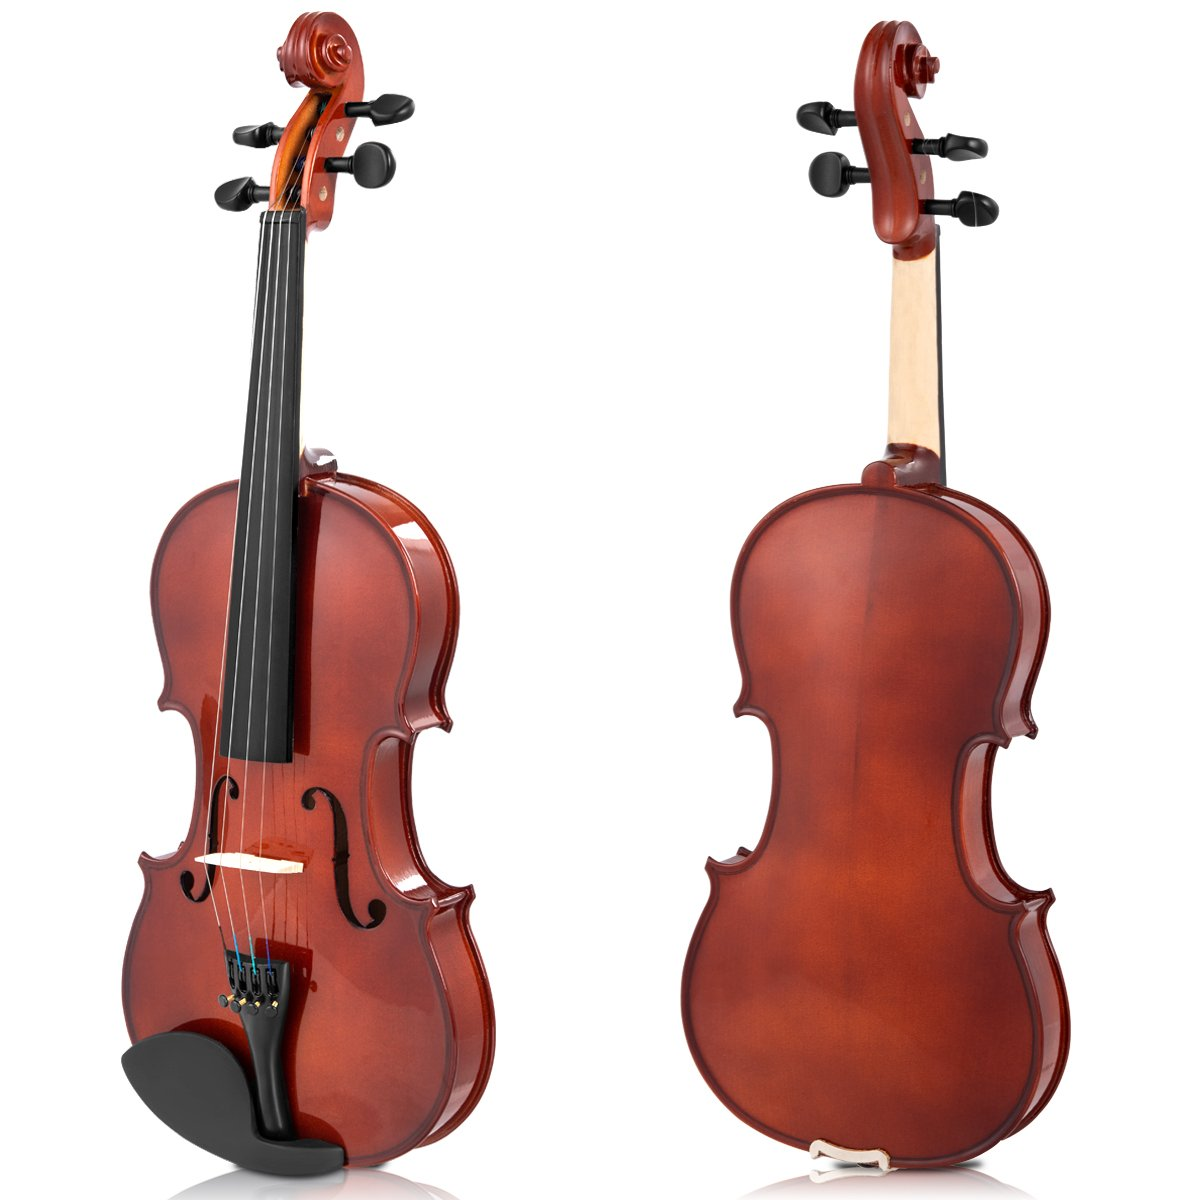 Sonart Full Size 4/4 Solid Wood Violin